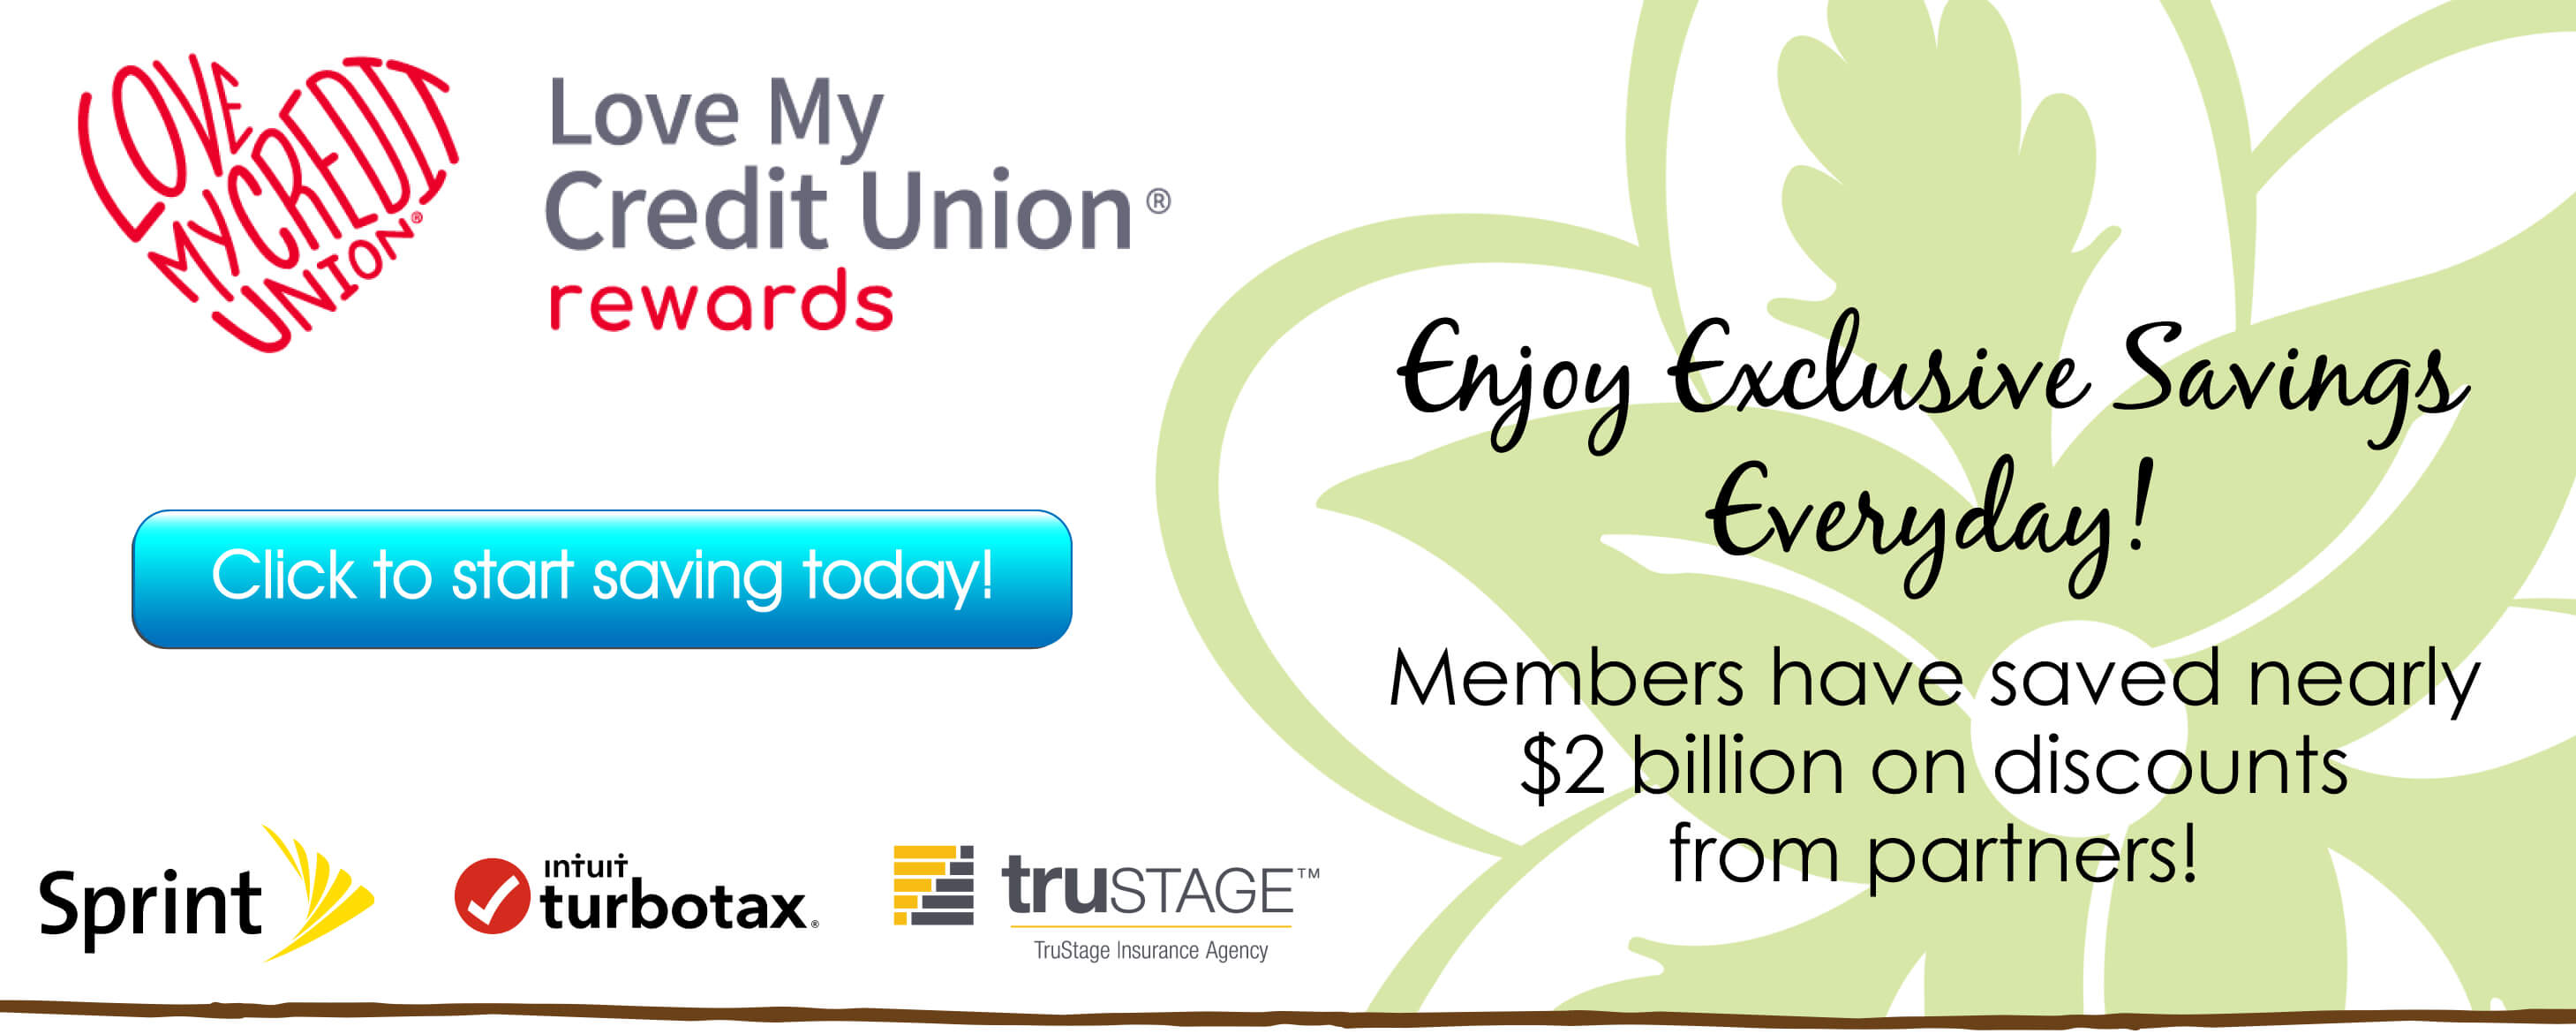 Enjoy exclusive savings everyday with Love My Credit Union Rewards!  Members have saved nearly $2 billion on discounts from partners!